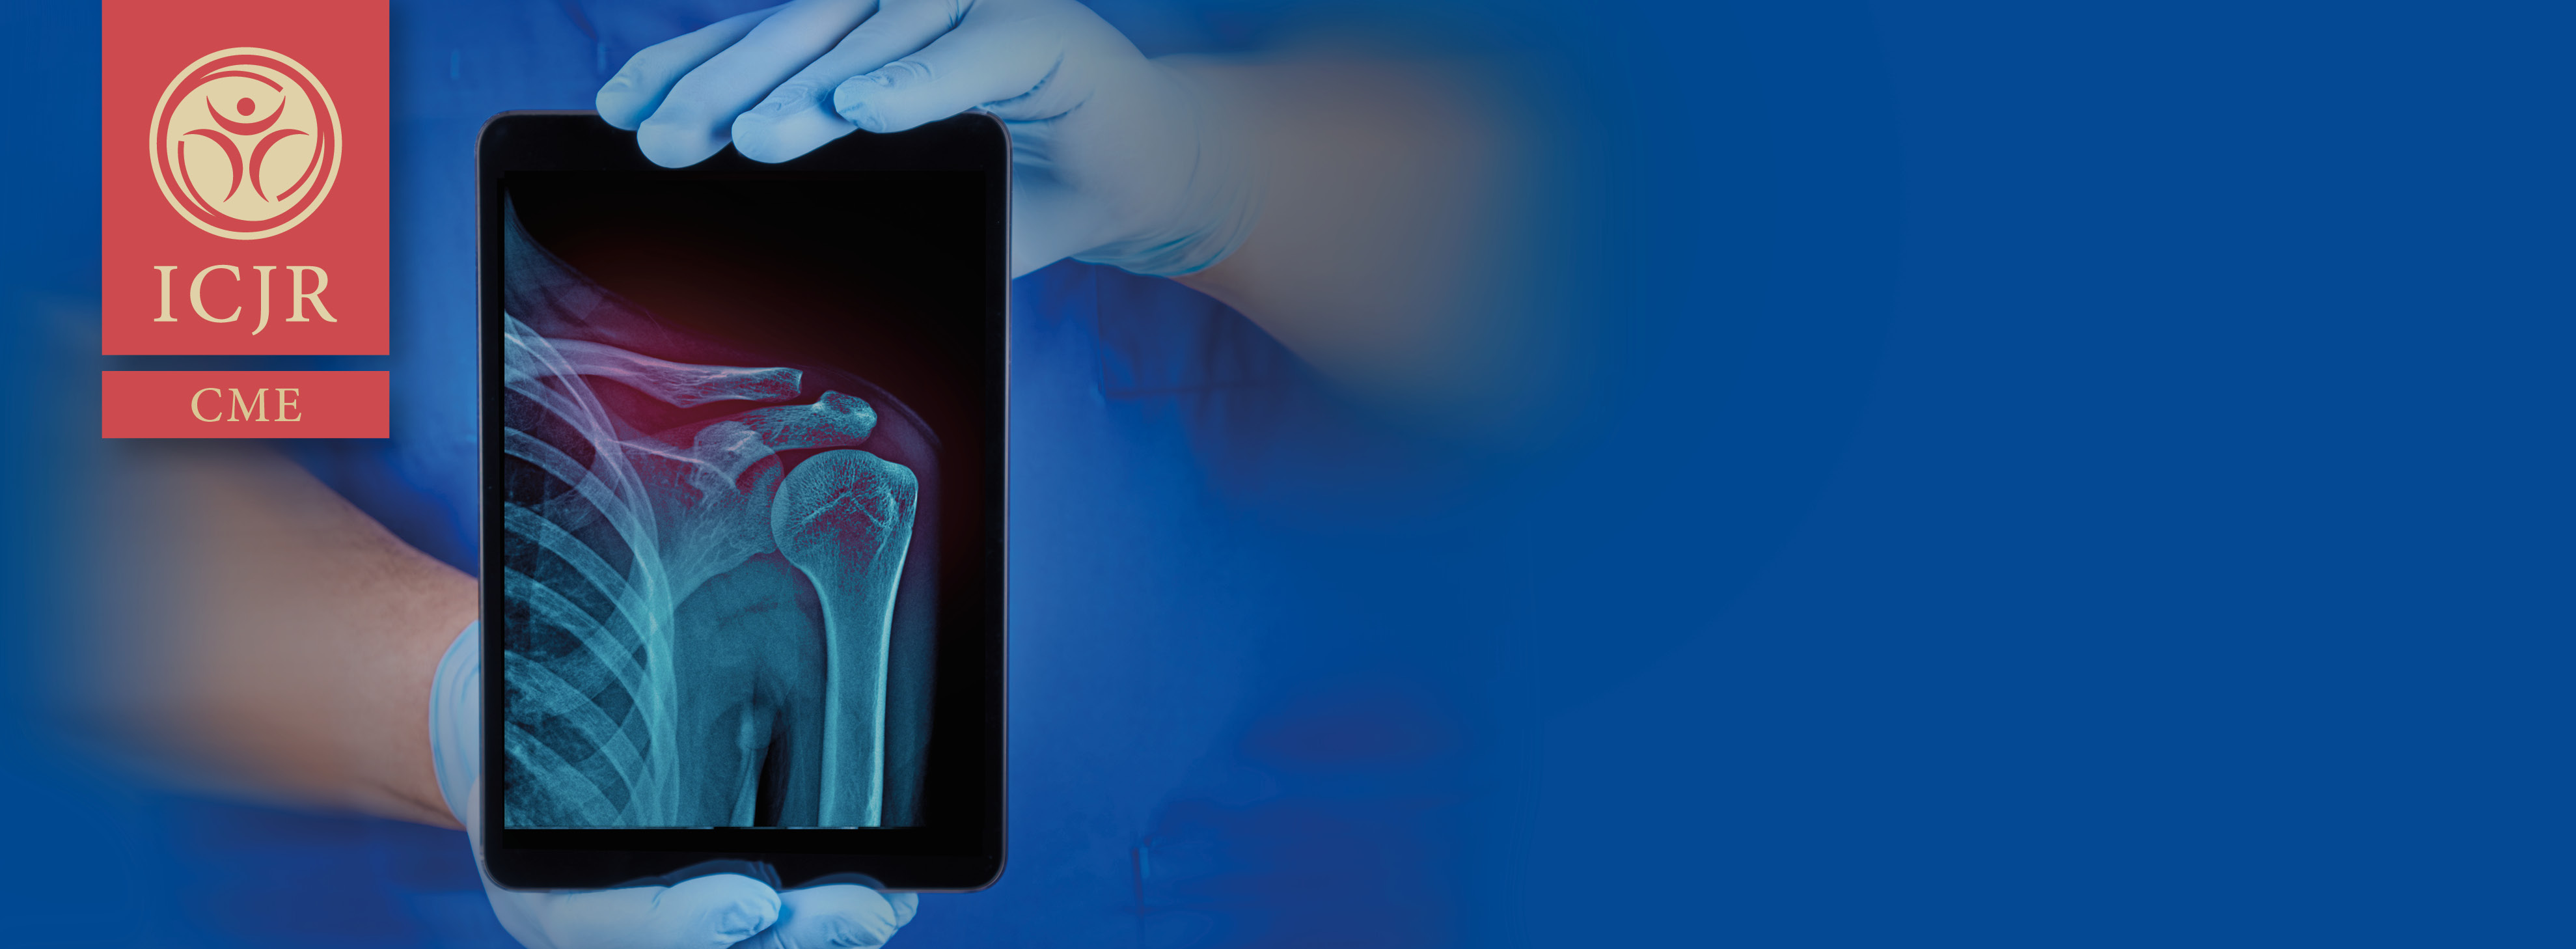 ICJR Insights: Advanced Concepts® in Shoulder Surgery - A CME Webinar Series